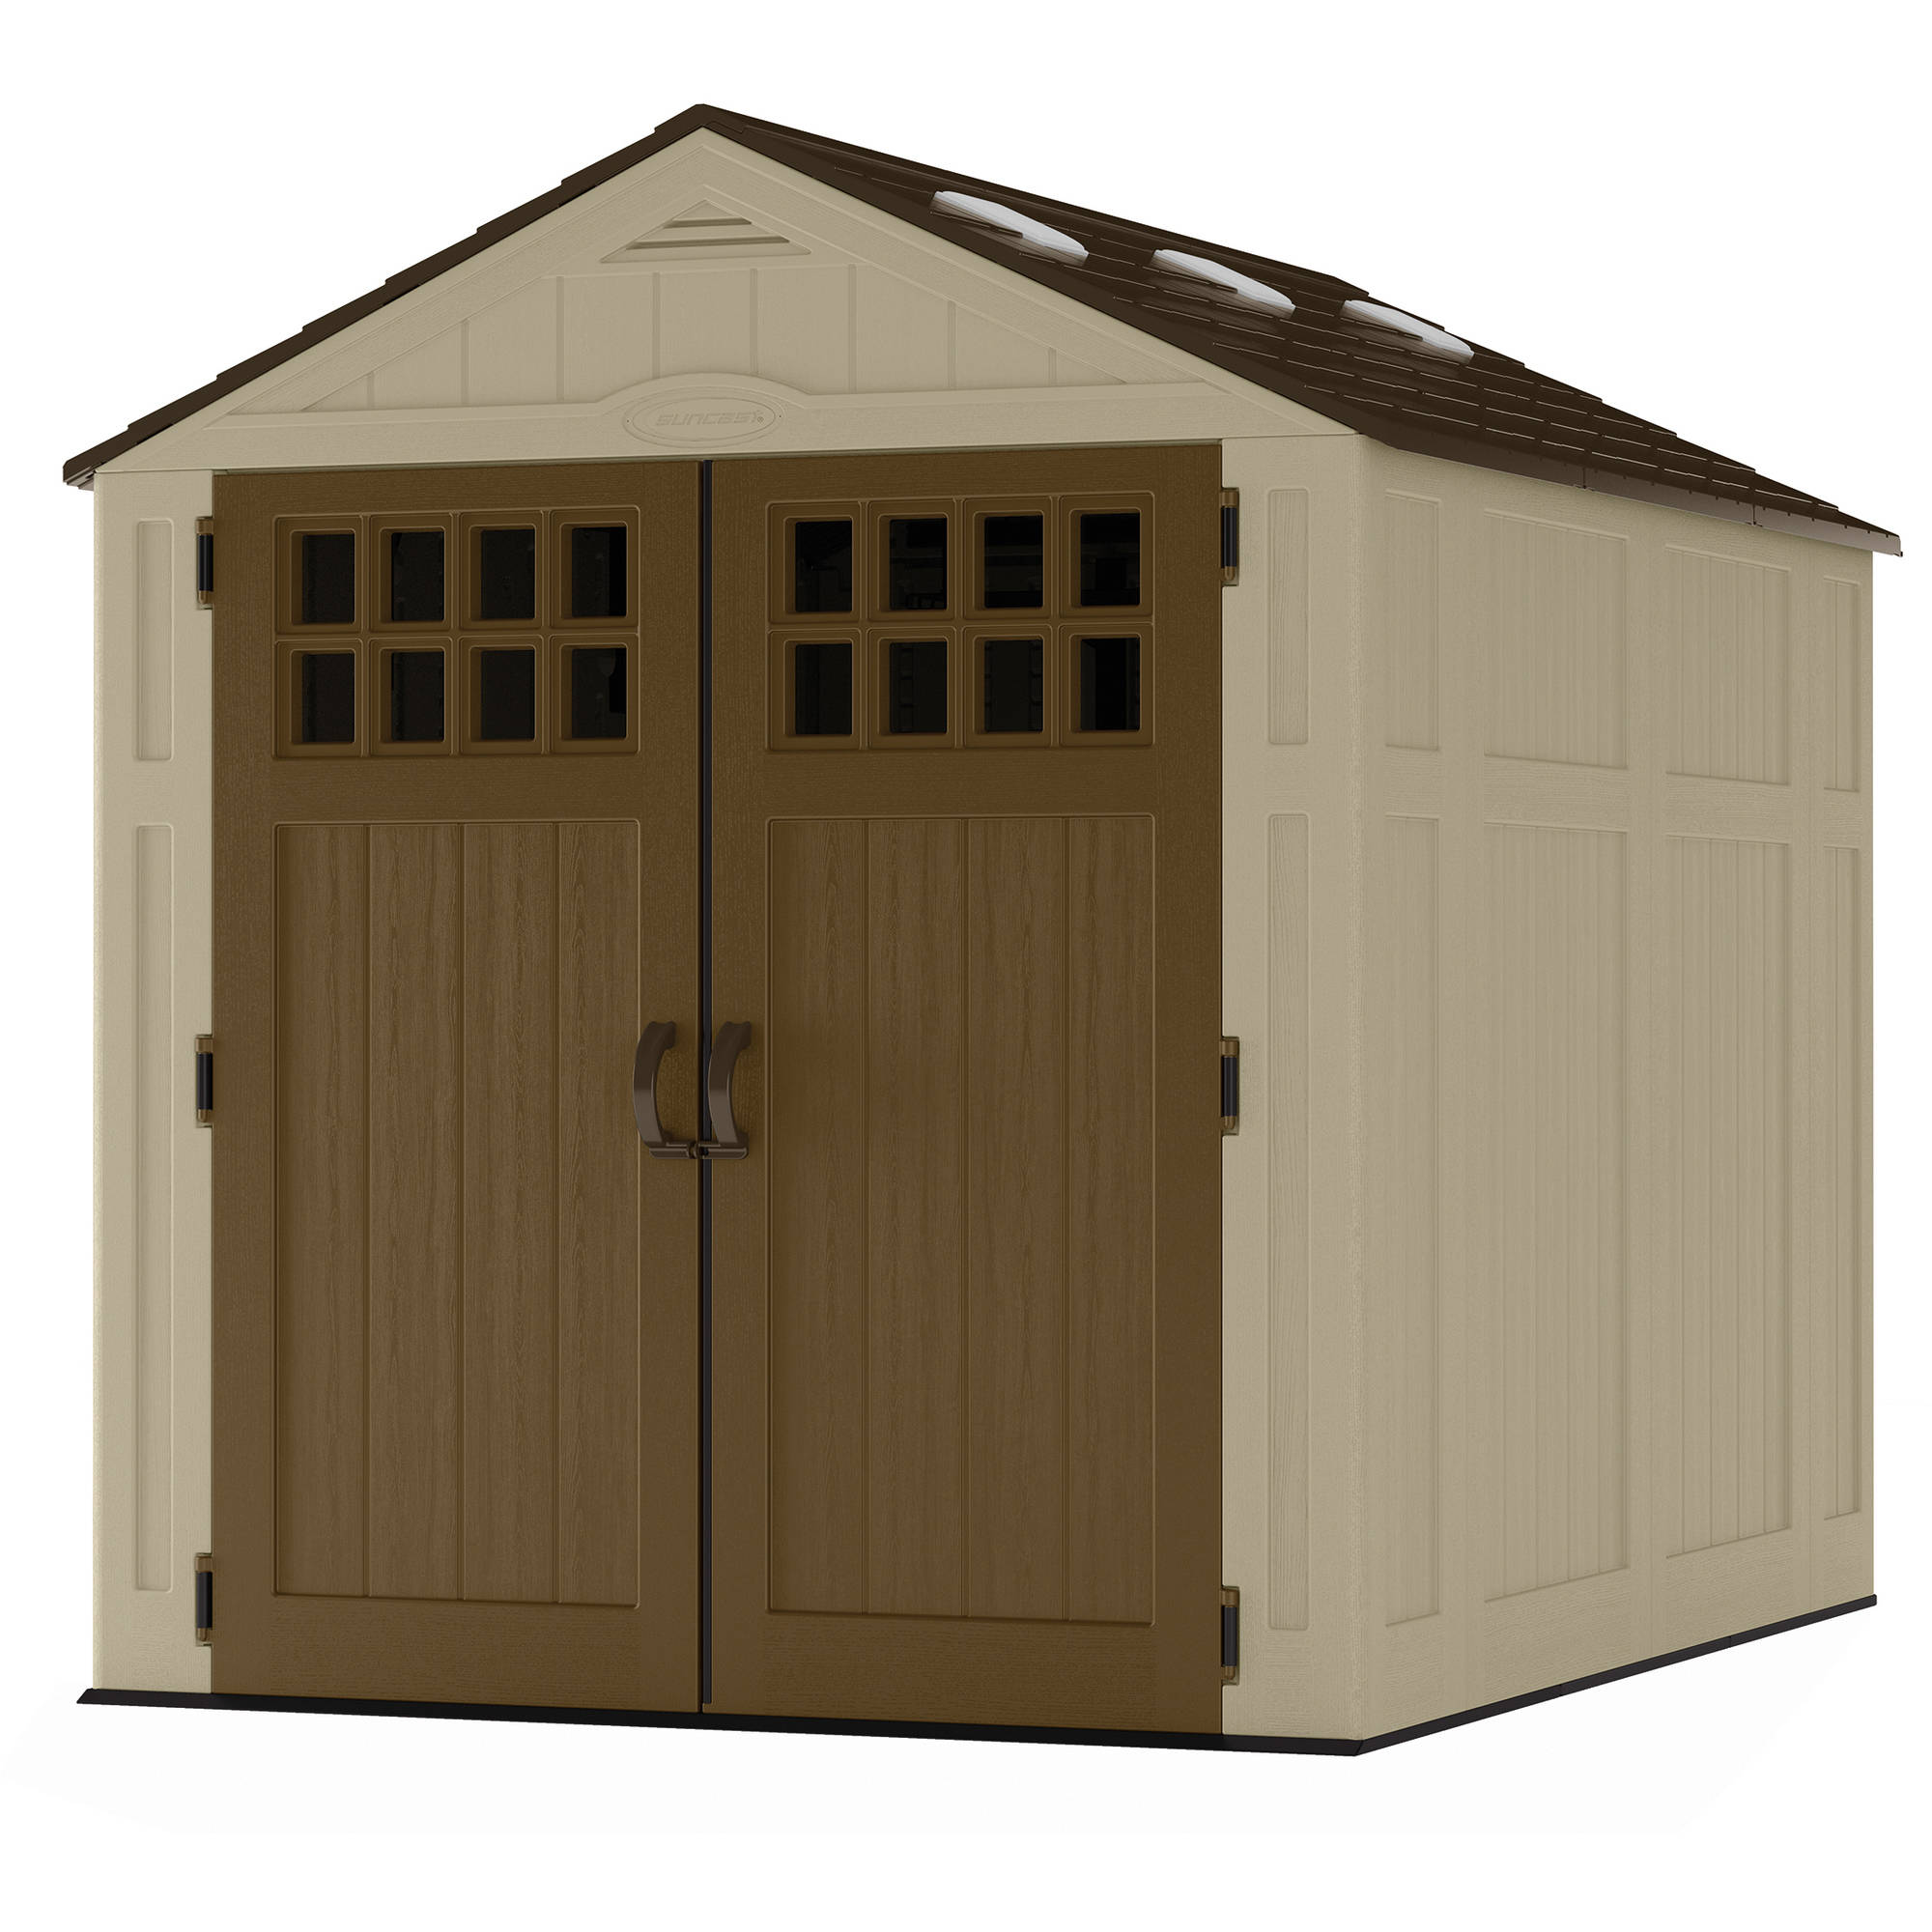 Suncast 6' x 8' Everett Vertical Storage Shed